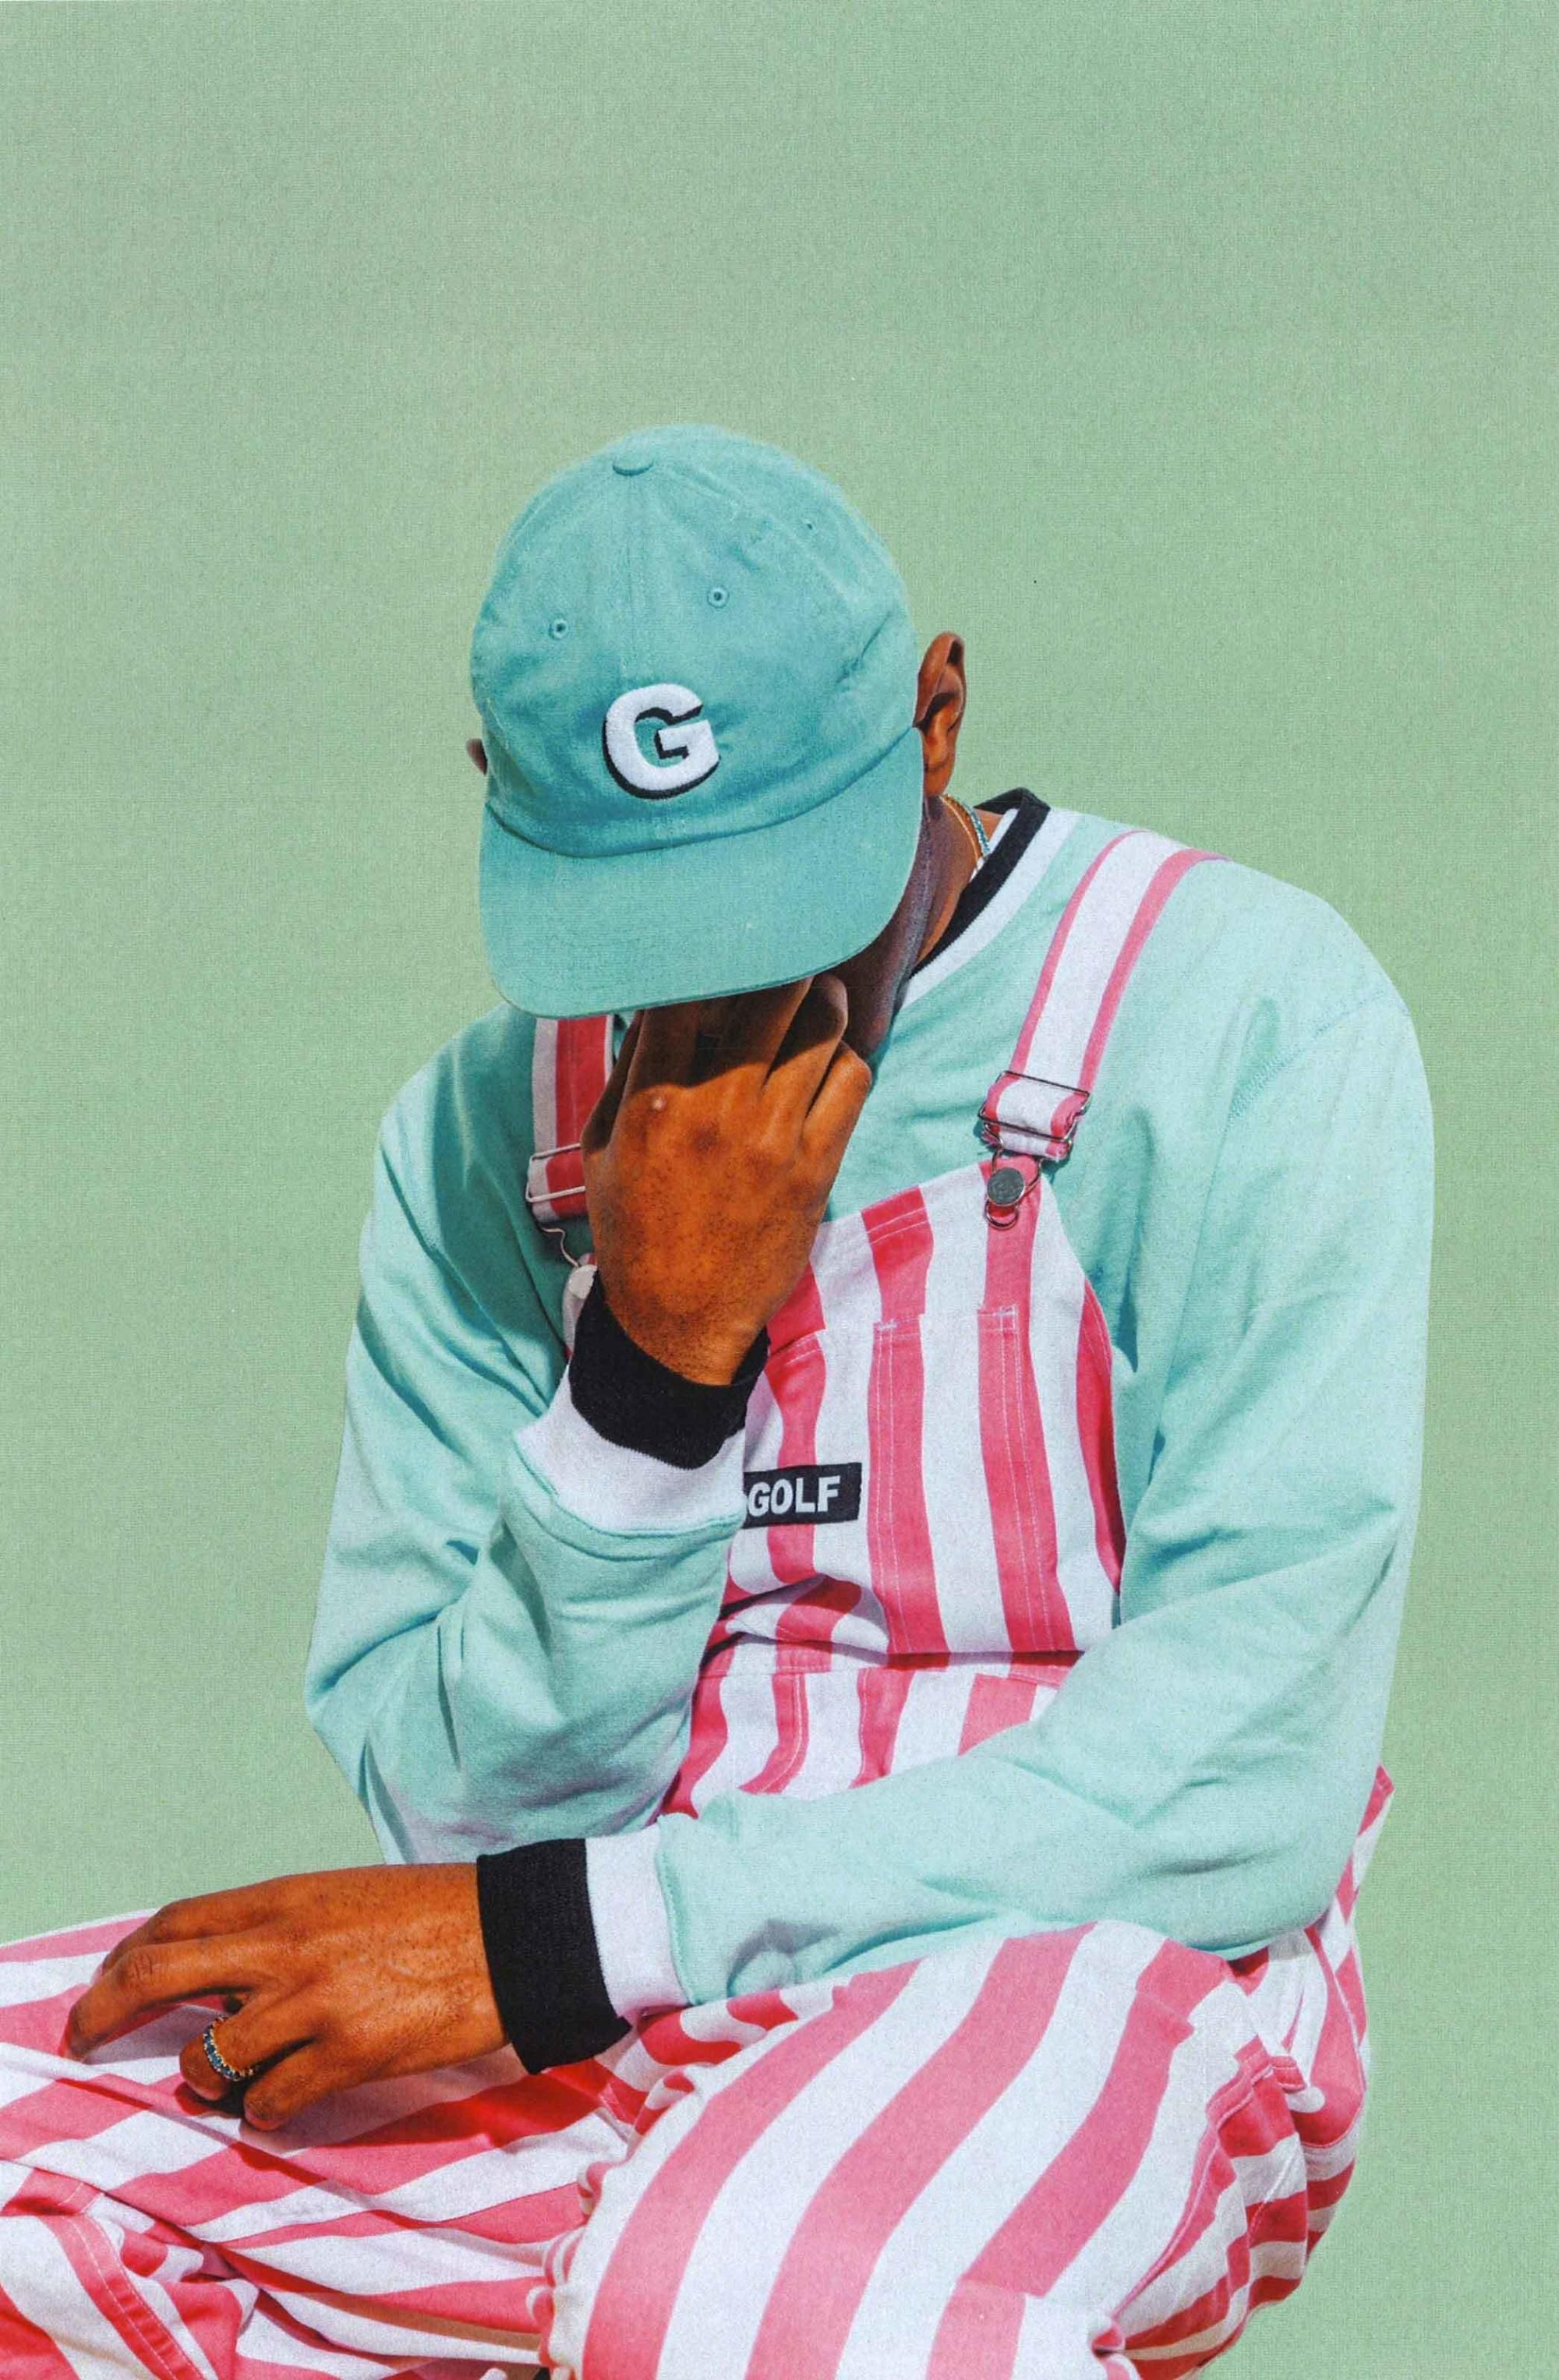 tyler, the creator made this bizarre lookbook Tyler the